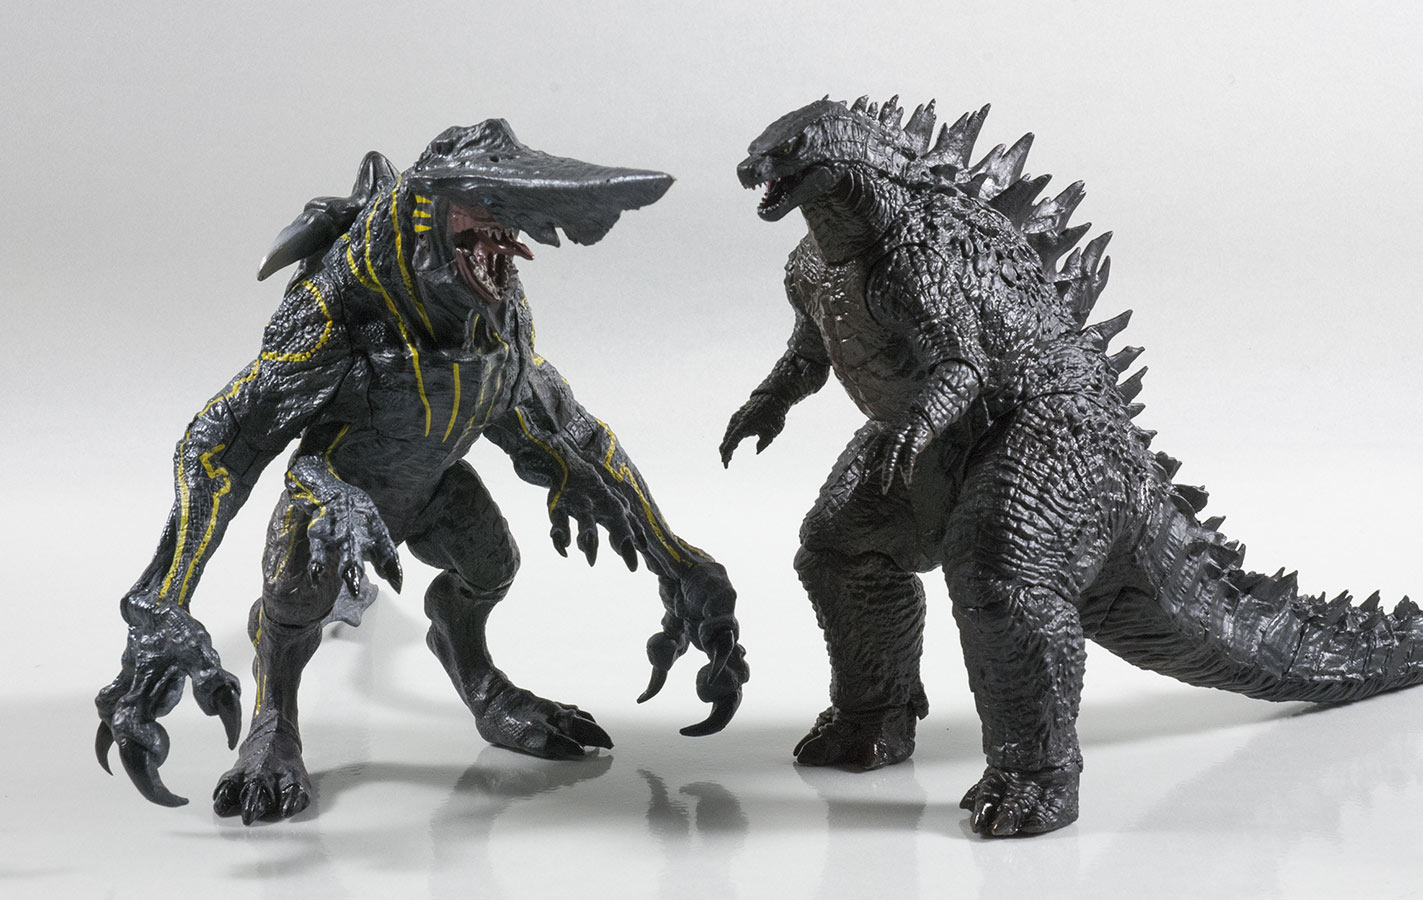 NECA 12inch Head-to-Tail with NECA Pacific Rim Knifehead.